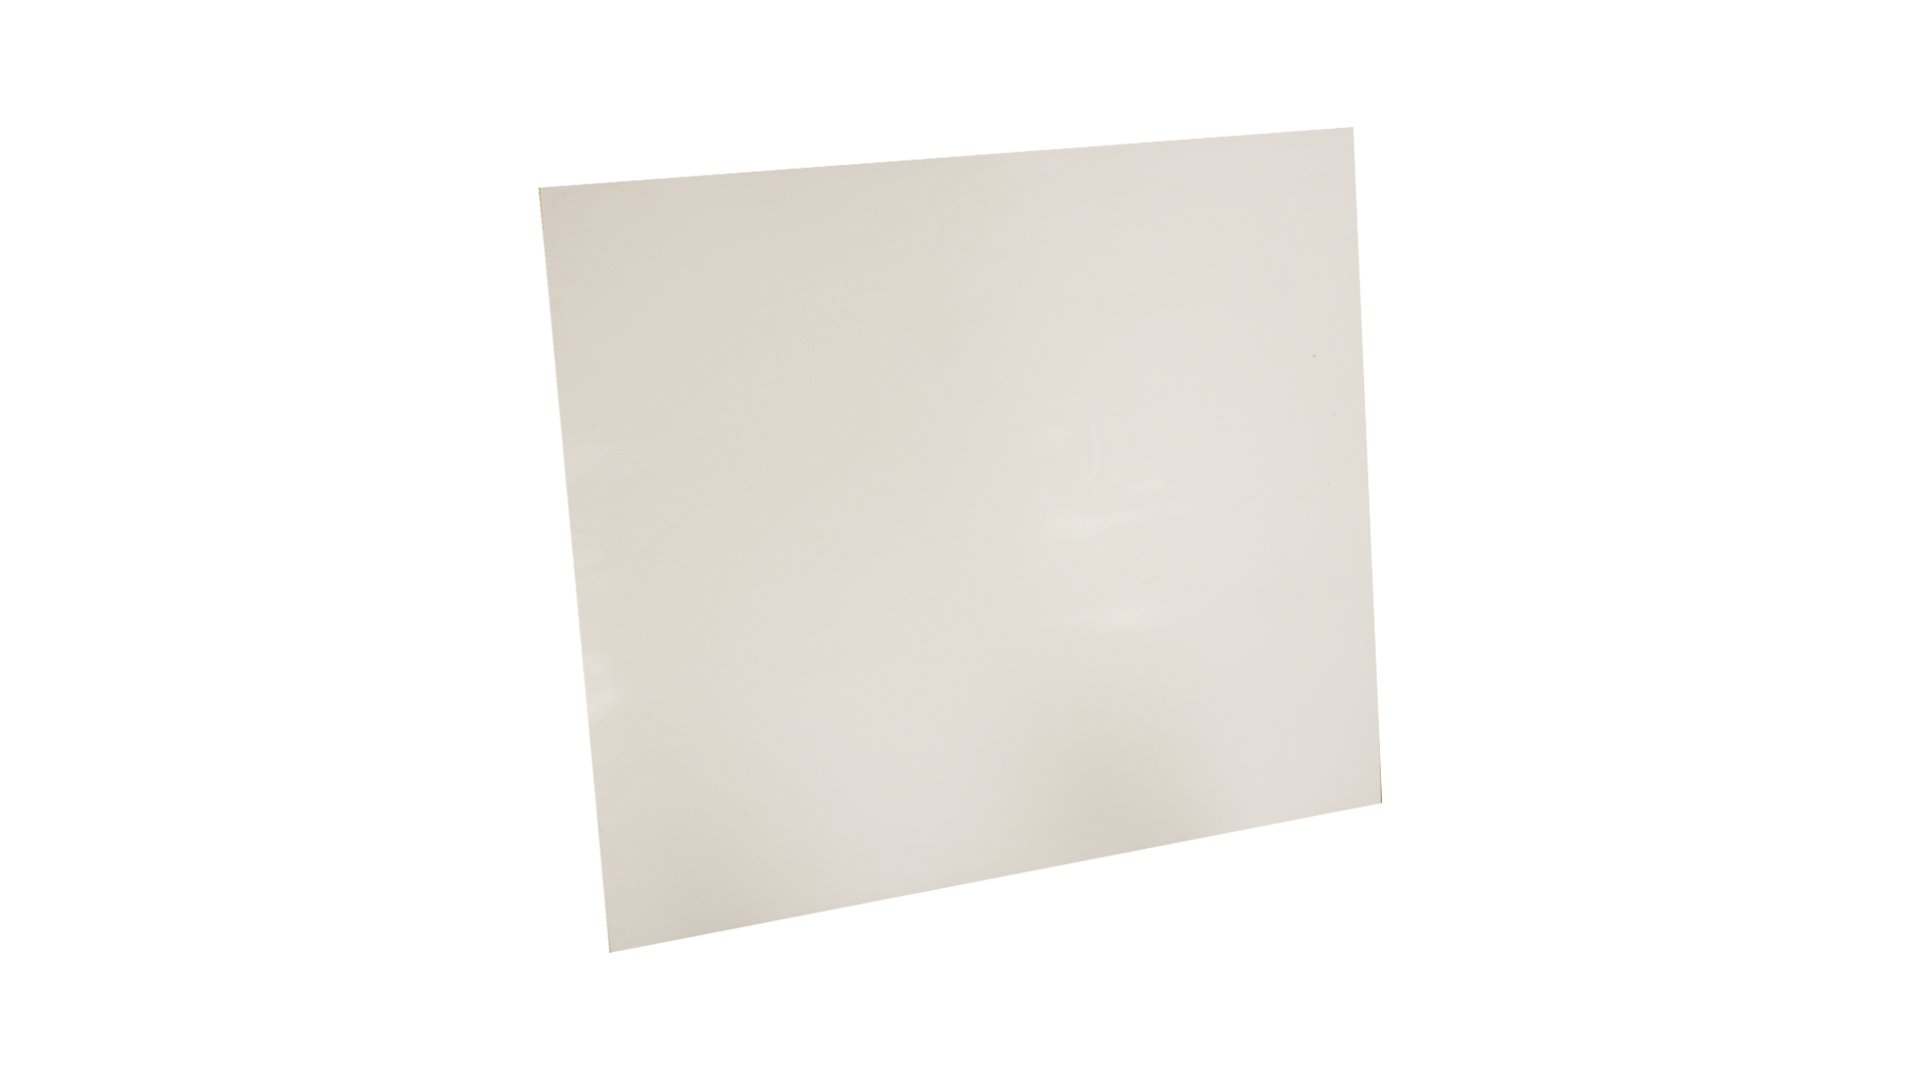 Sterling Seal & Supply Expanded PTFE Sheet, .5 mm Thick, 12'' x 12'', White (1 sheet)